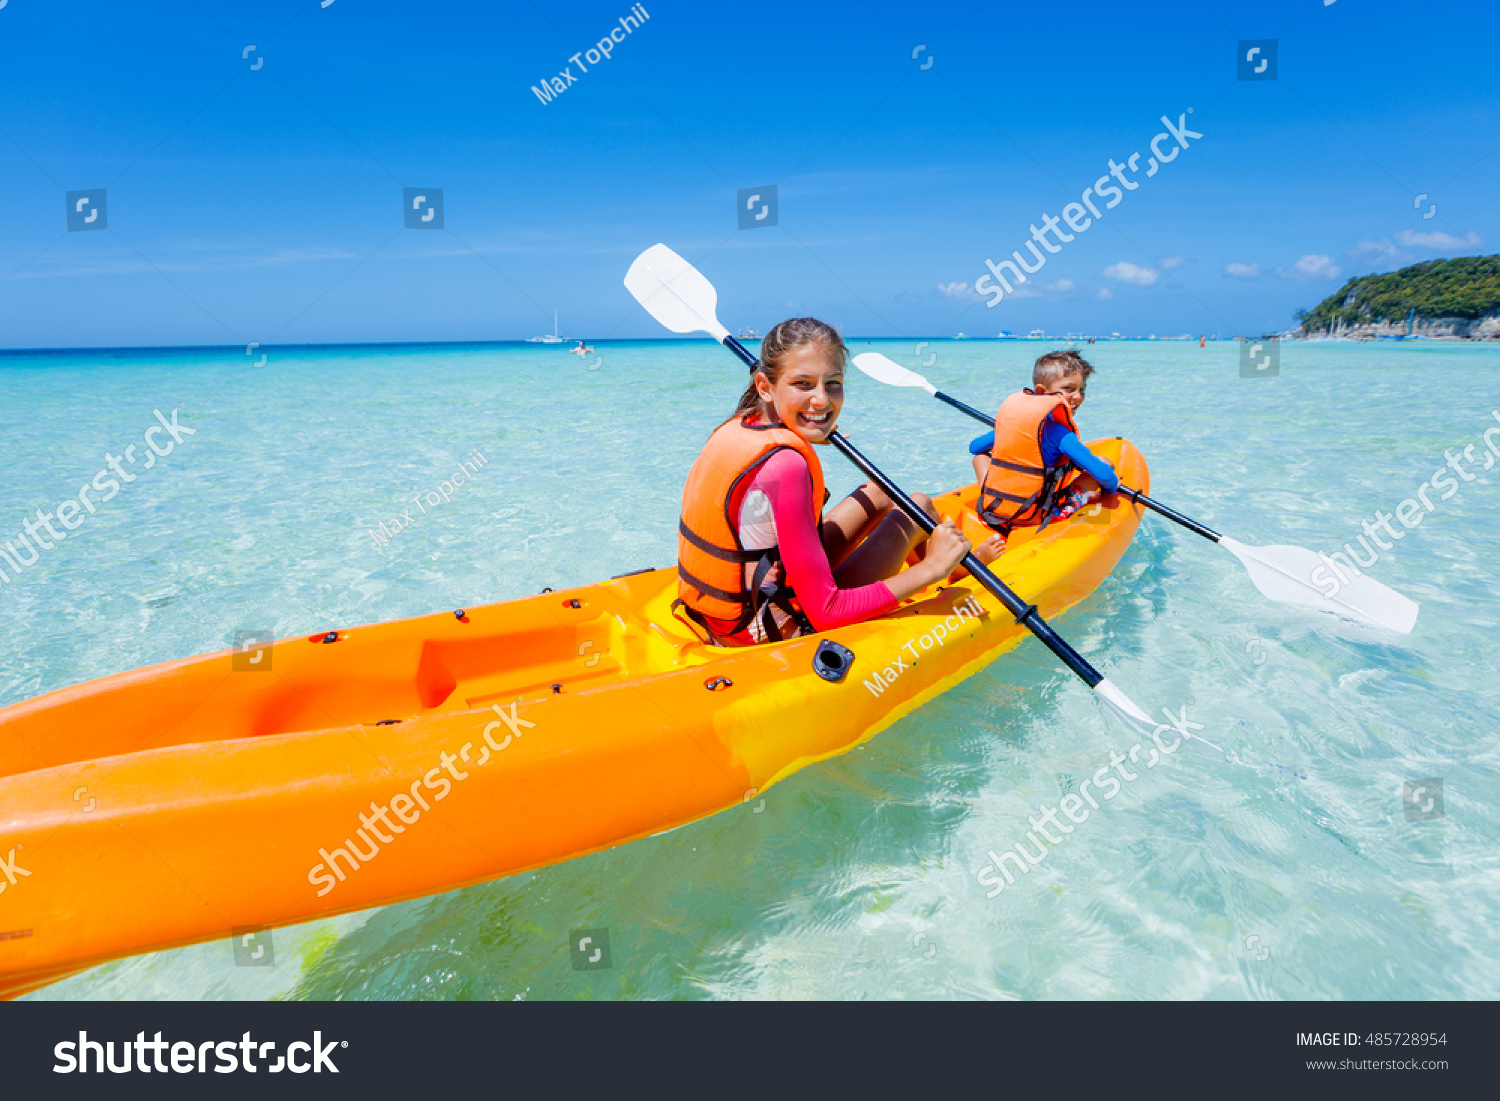 Kids Enjoying Paddling Orange Kayak Tropical Stock Photo